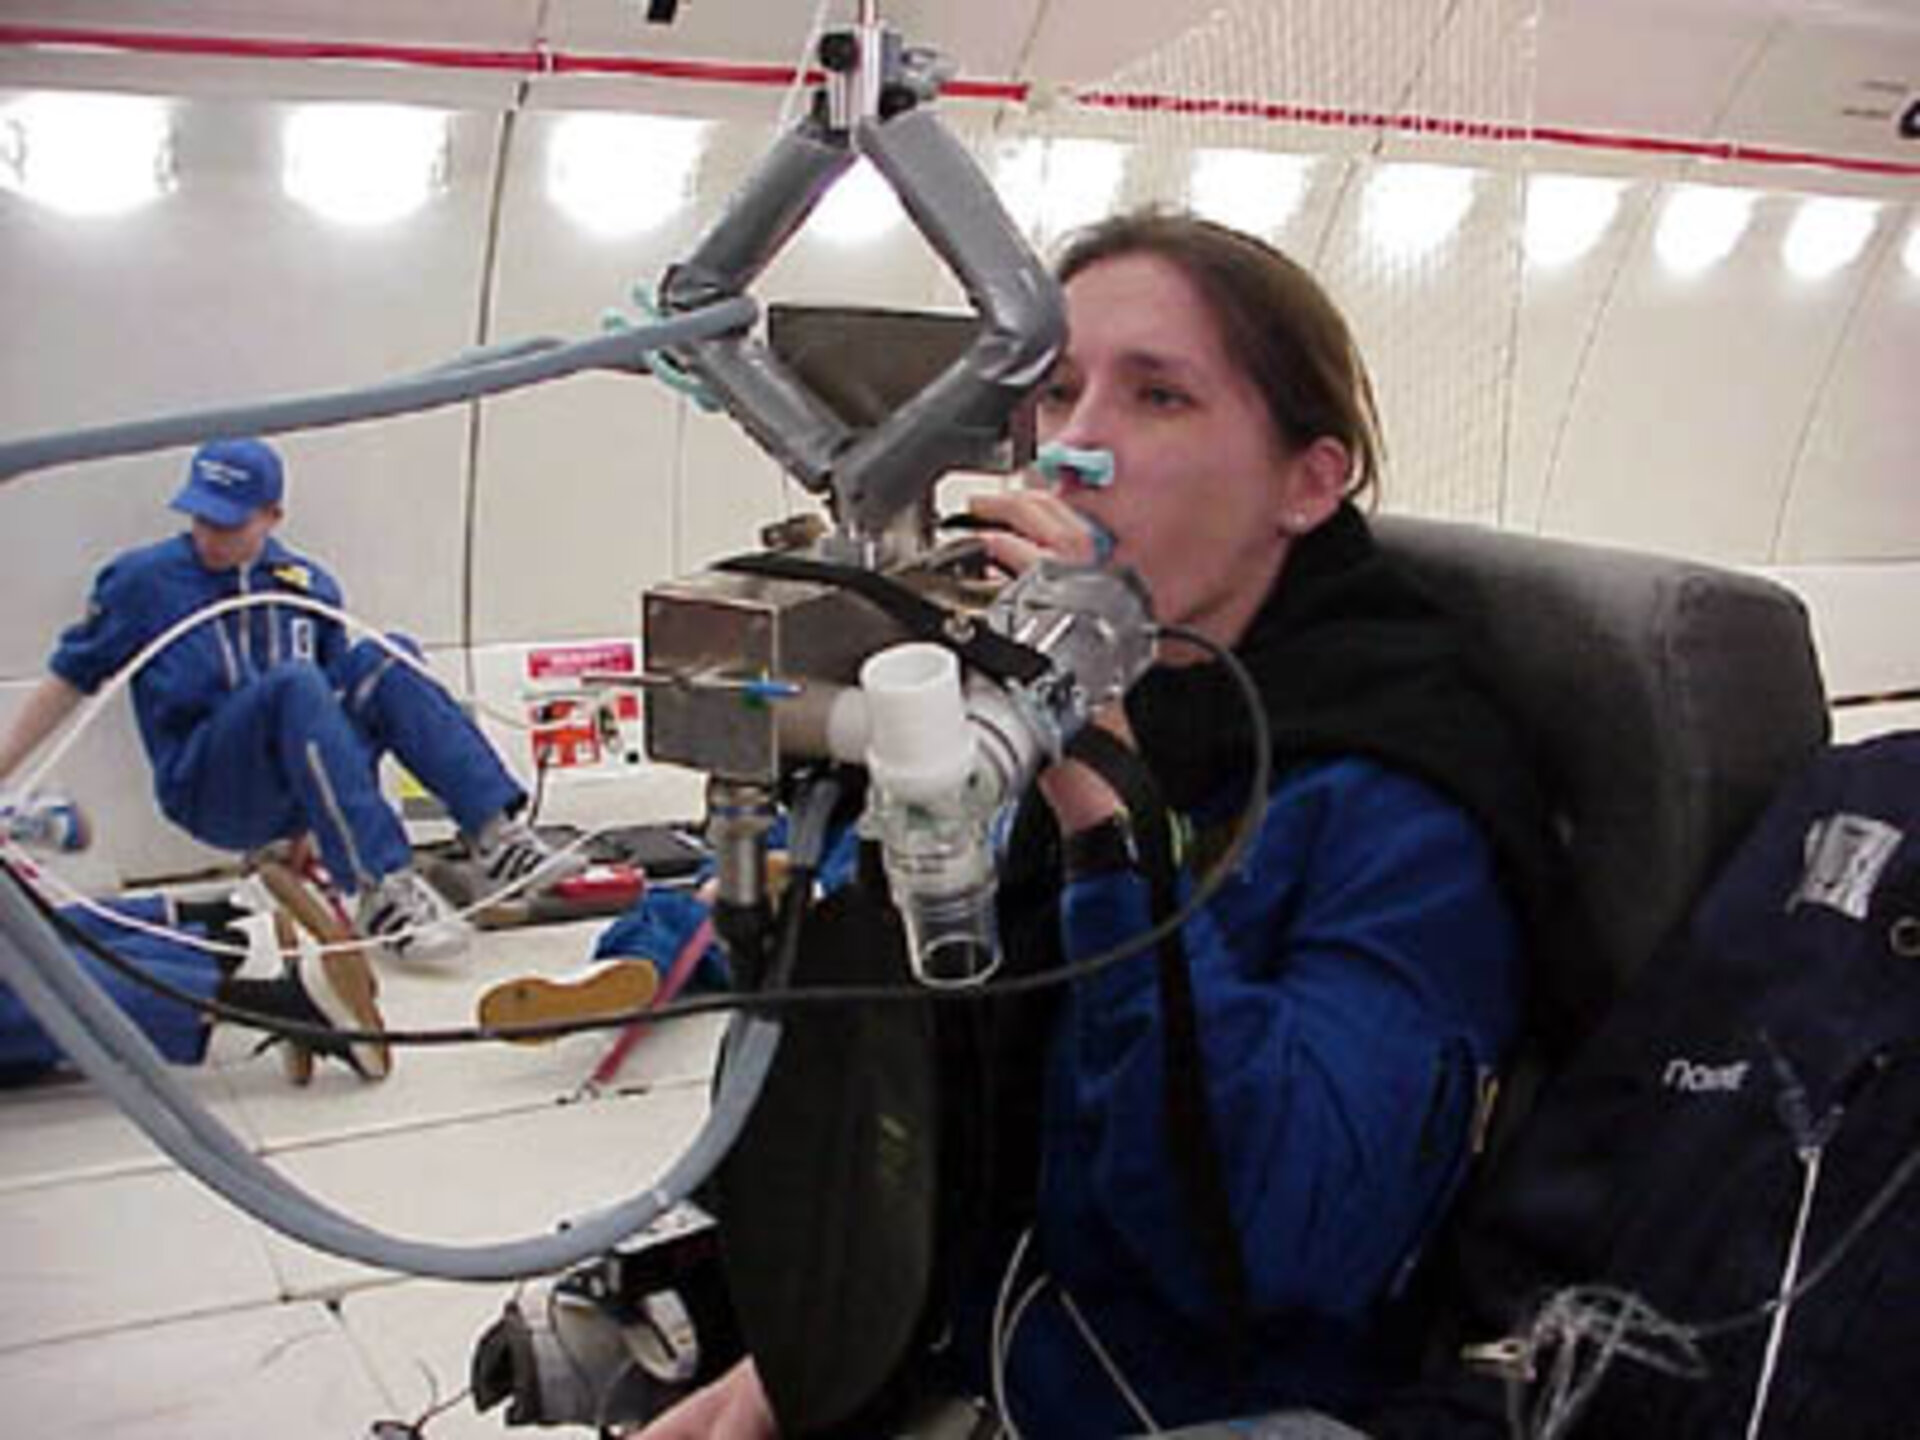 The Pulmonary Function System measures how lung function alters in microgravity